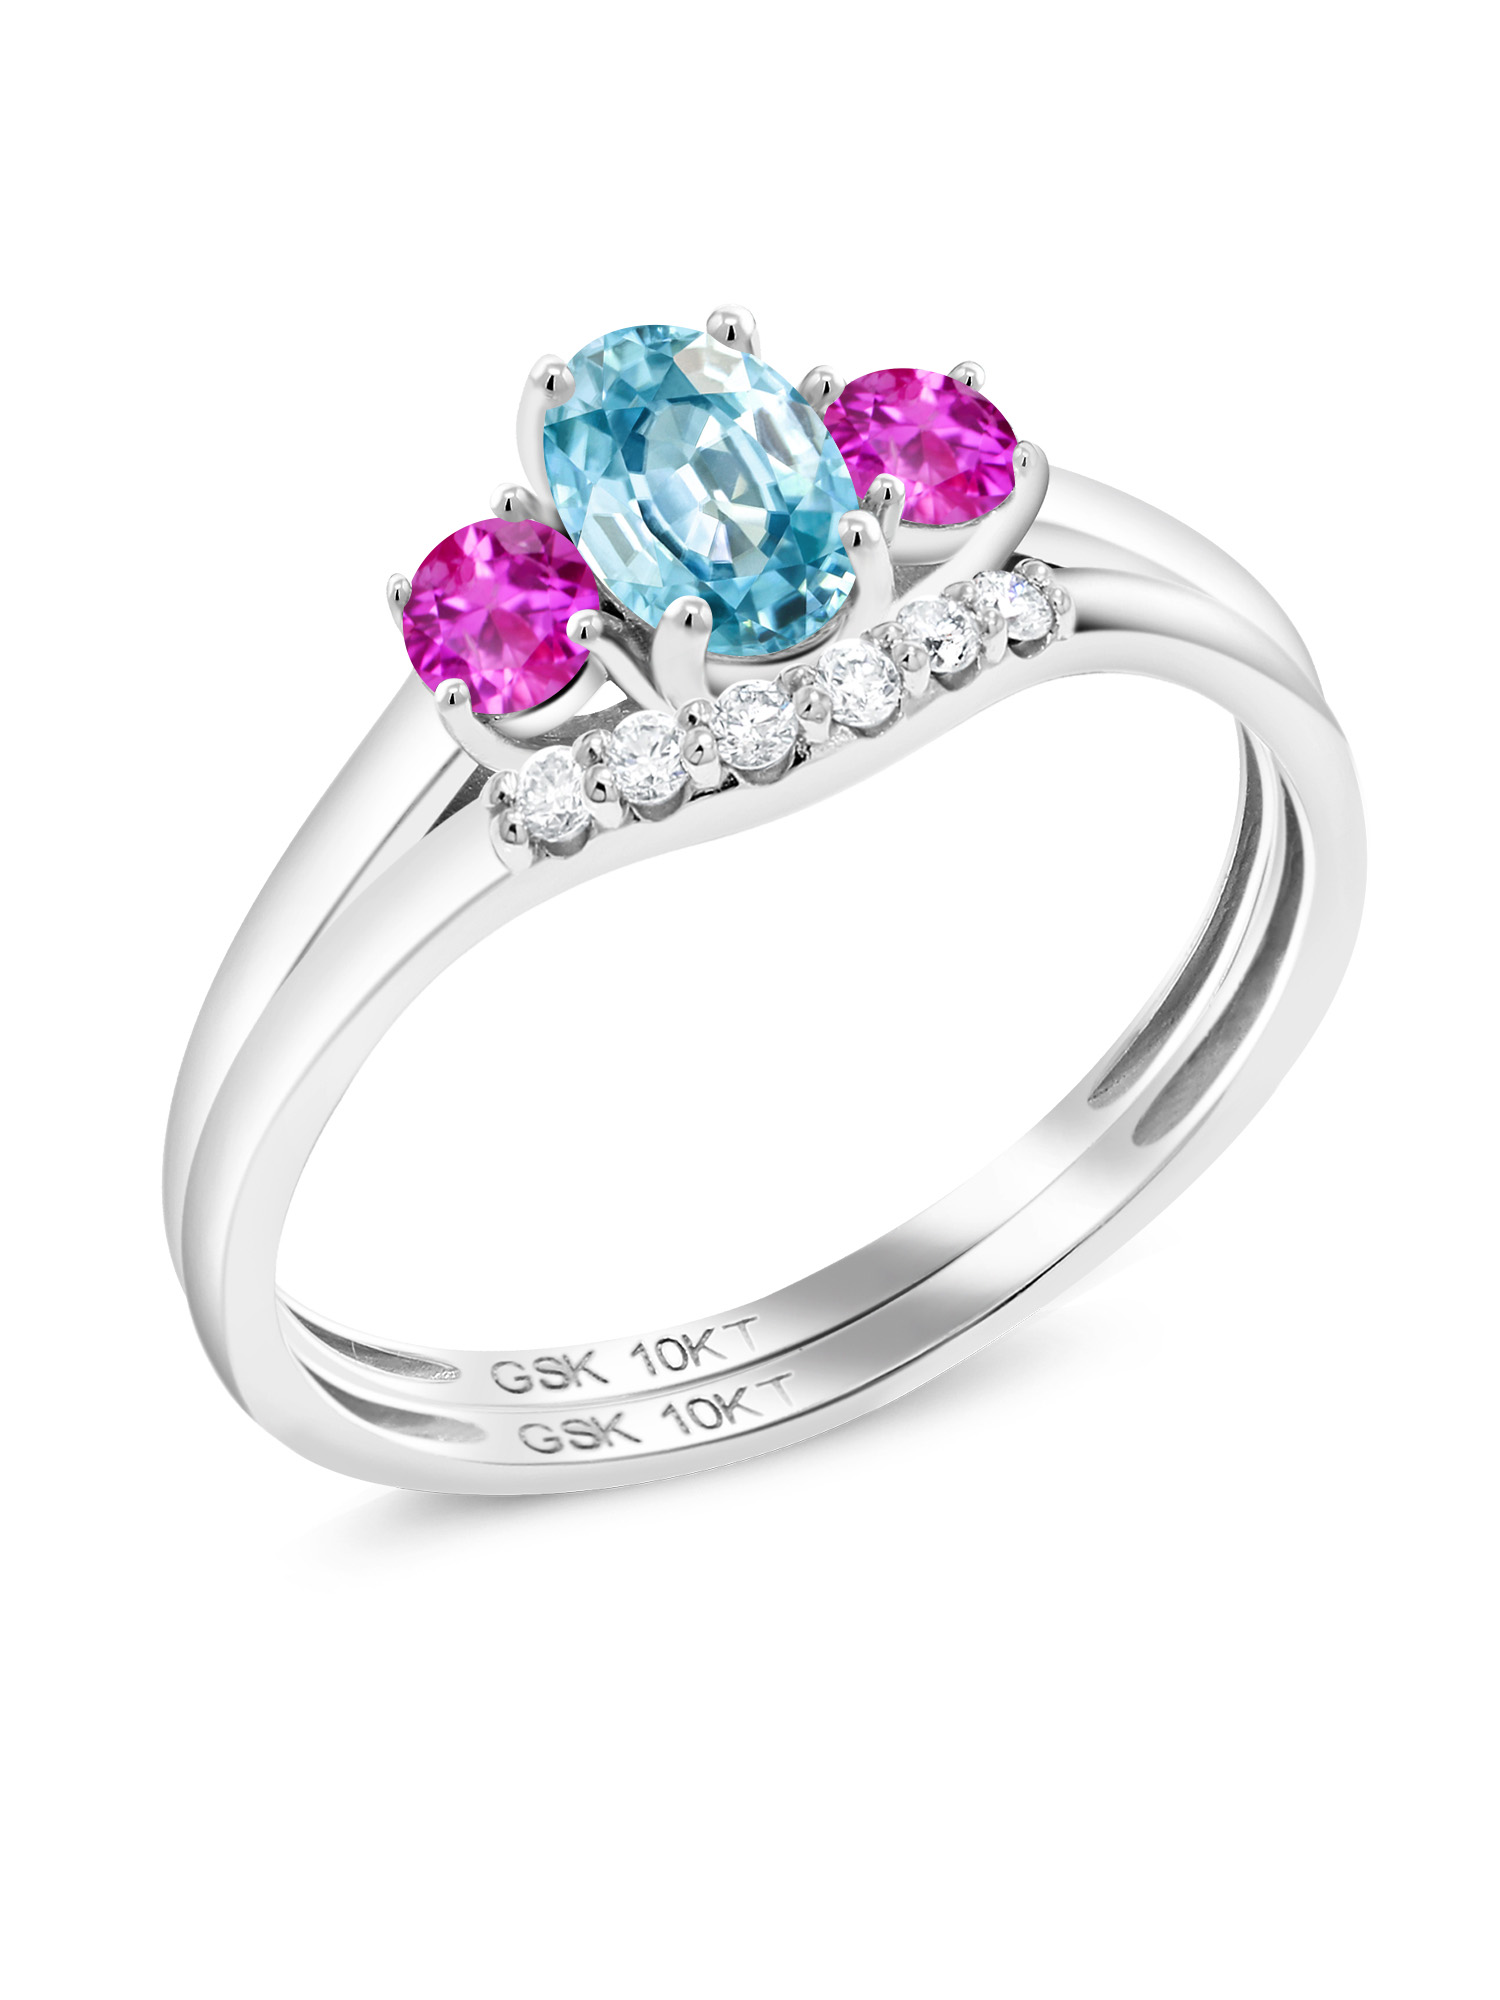 1.07 Ct Oval Blue Zircon Pink Sapphire 10K White Gold Lab Grown Diamond Ring by